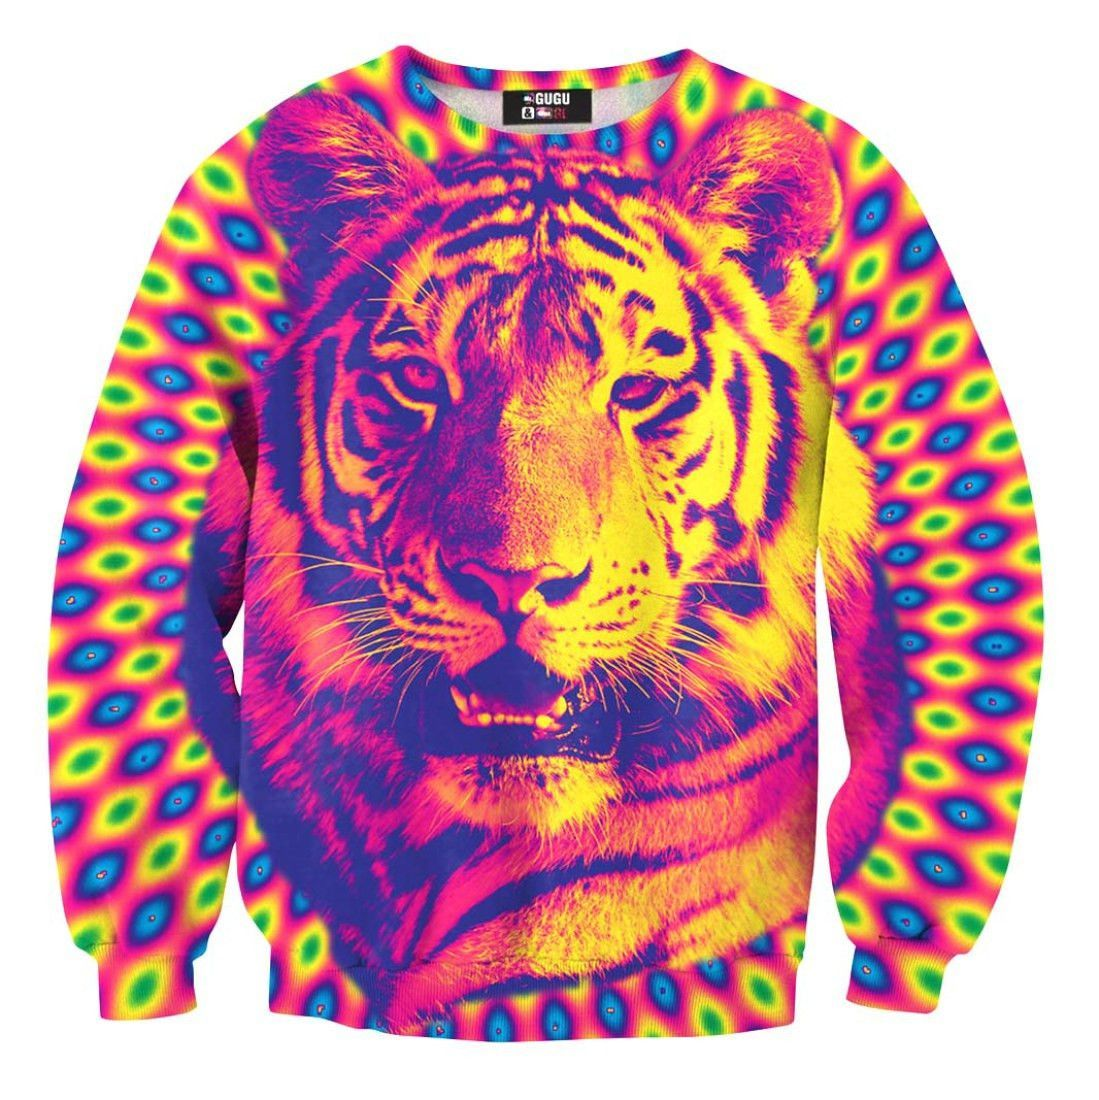 e34008f90b02b7 Psychedelic Trippy Tiger Face Graphic Rainbow Print Unisex Pullover  Sweatshirt Sweater